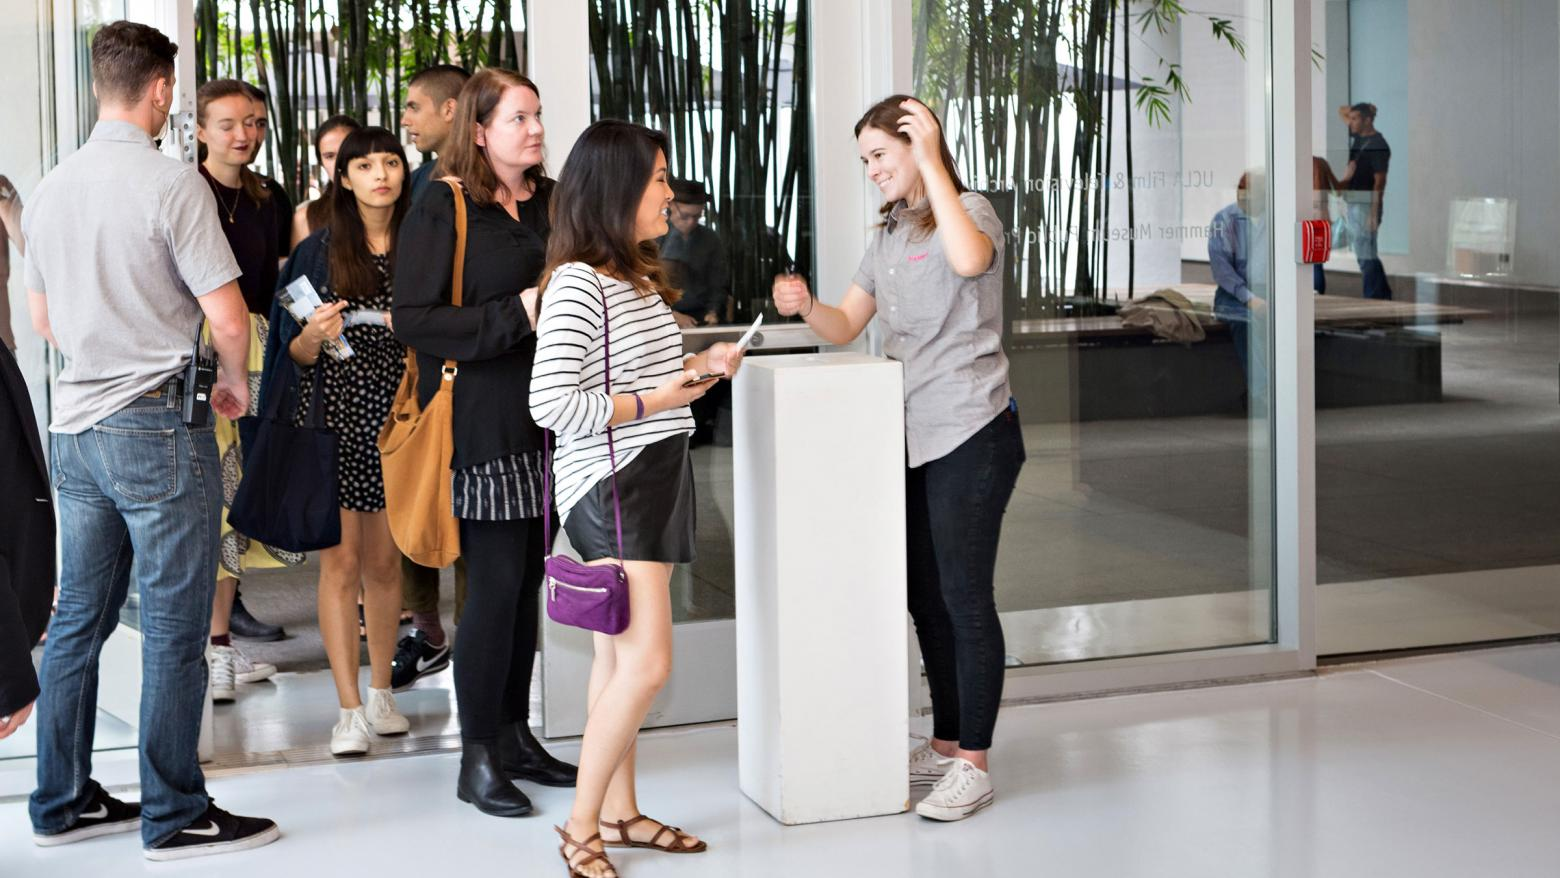 Visitors enter the theater at the Hammer Museum